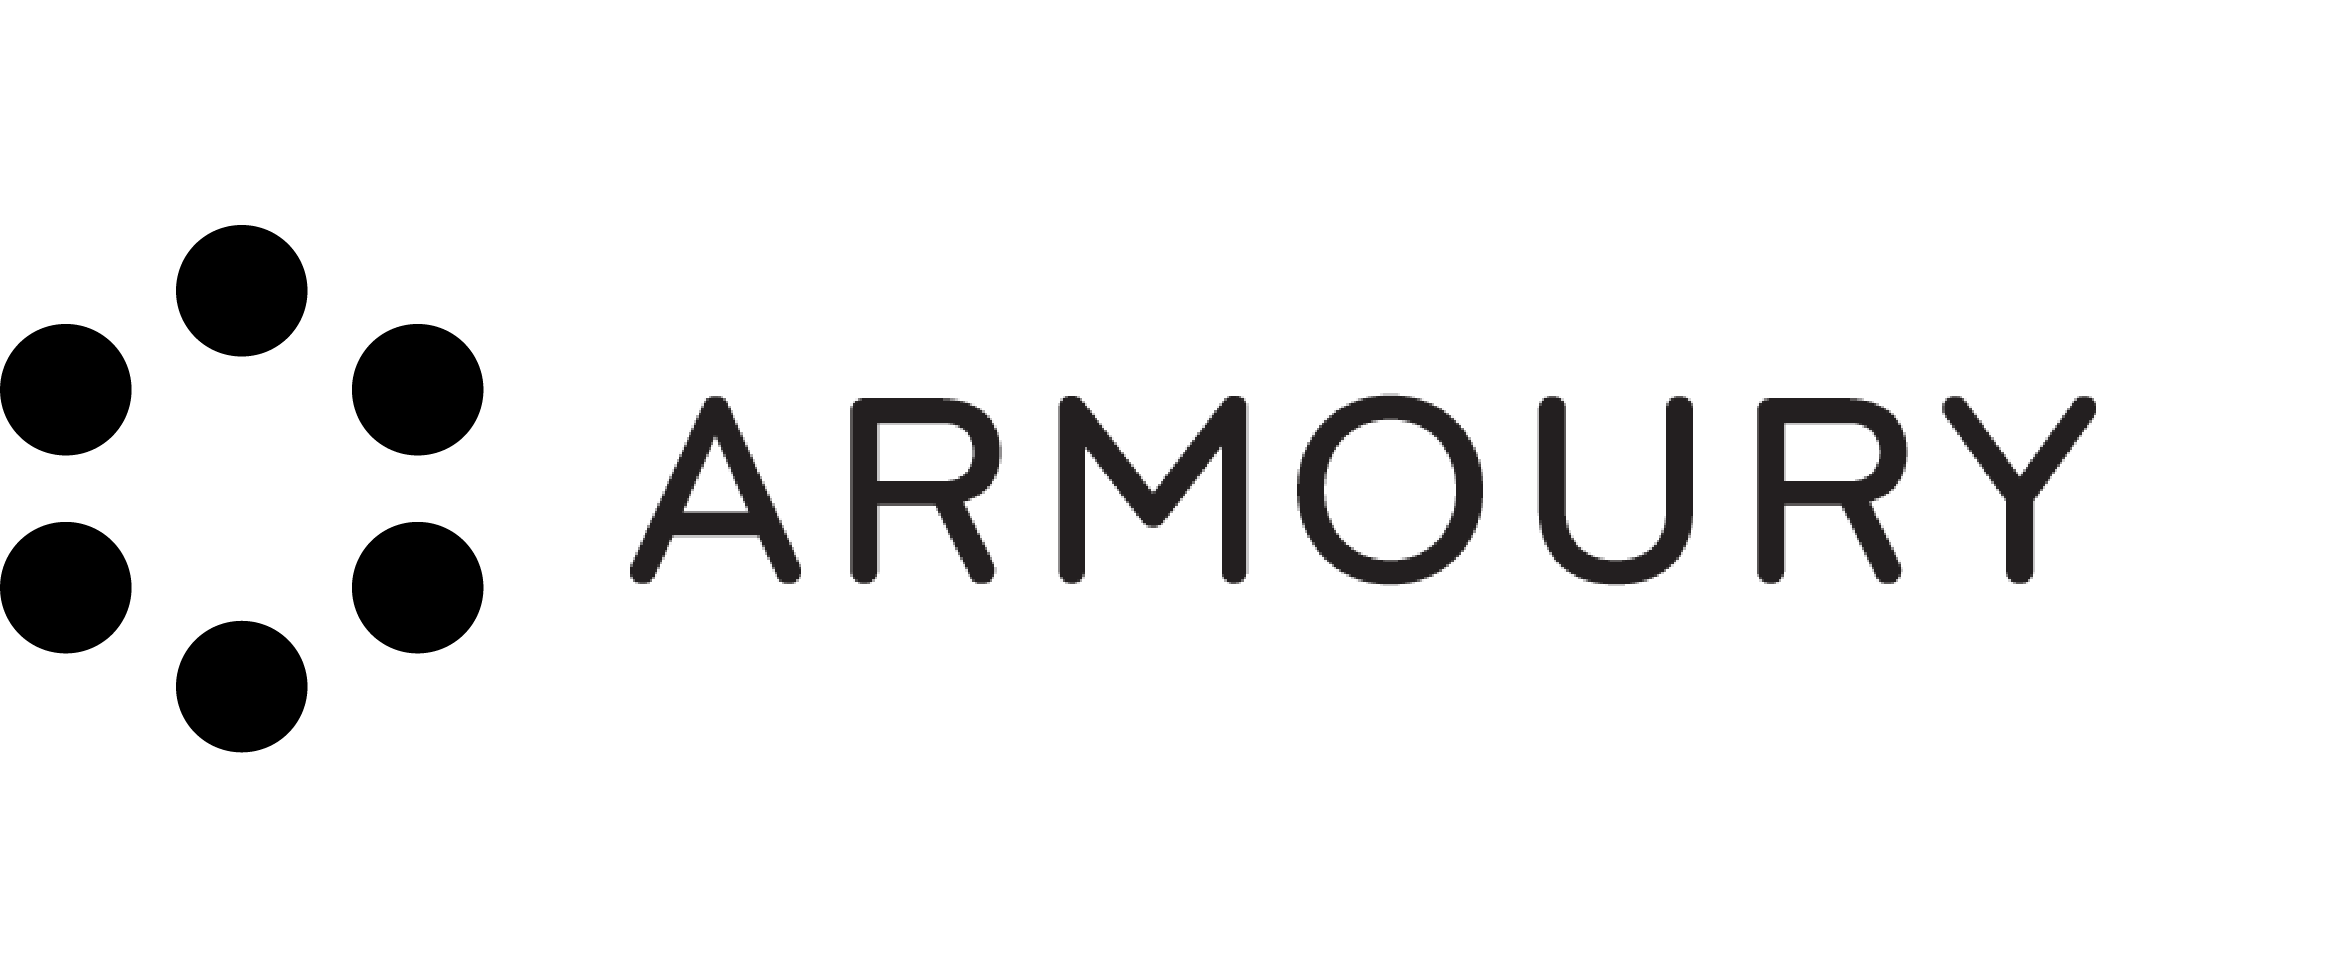 Armoury London // Live Action